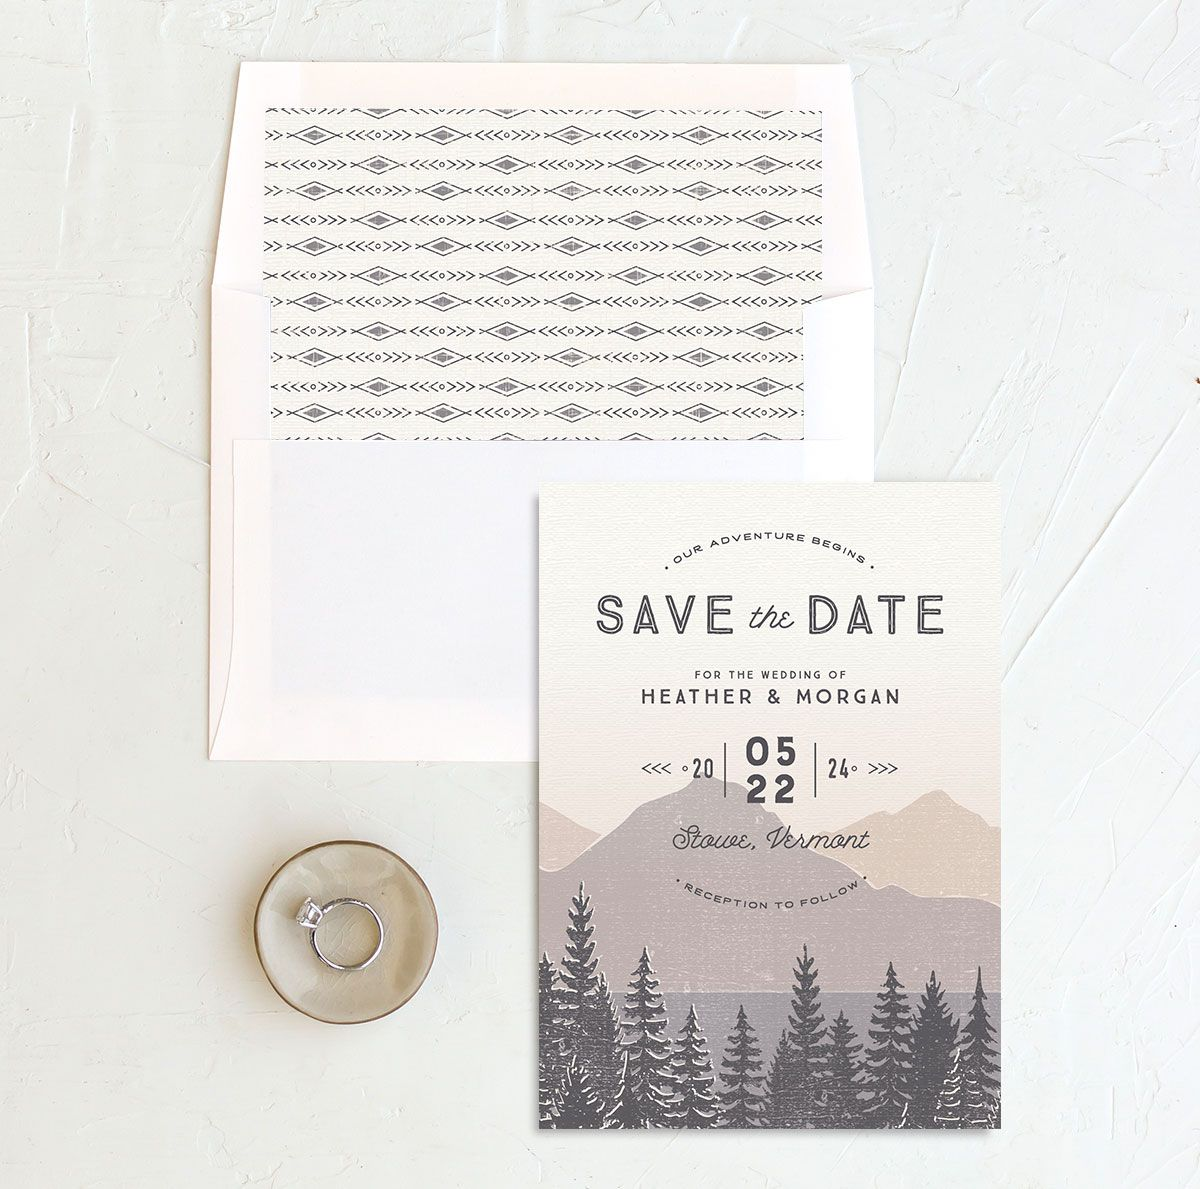 Vintage Mountainside Save the Date and envelope liner in grey